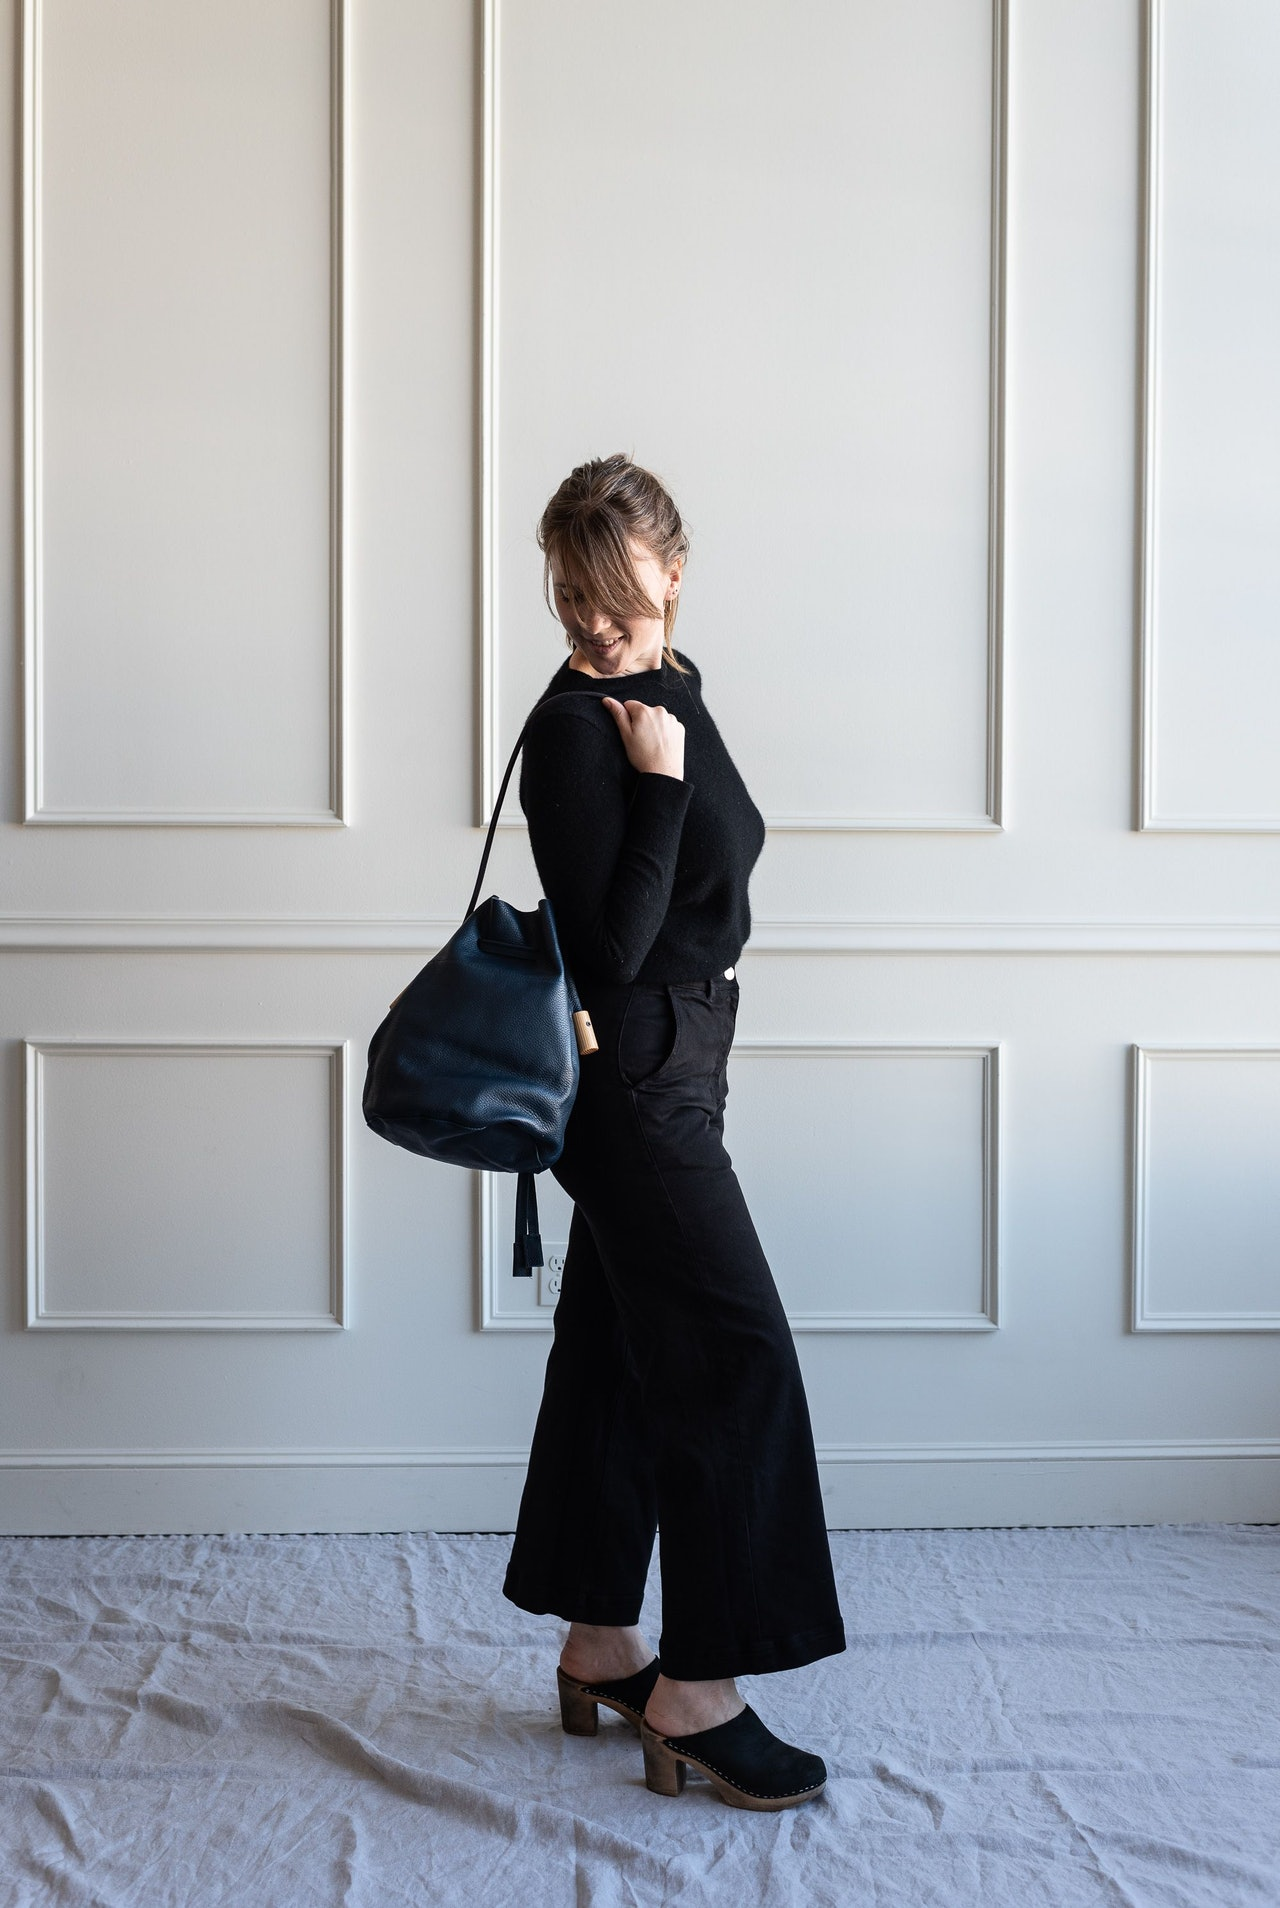 Fall 10x10 Day 3 Look - Everlane Cashemere Crew Sweater & Wide Leg Crop Pants in Black by Conscious by Chloé